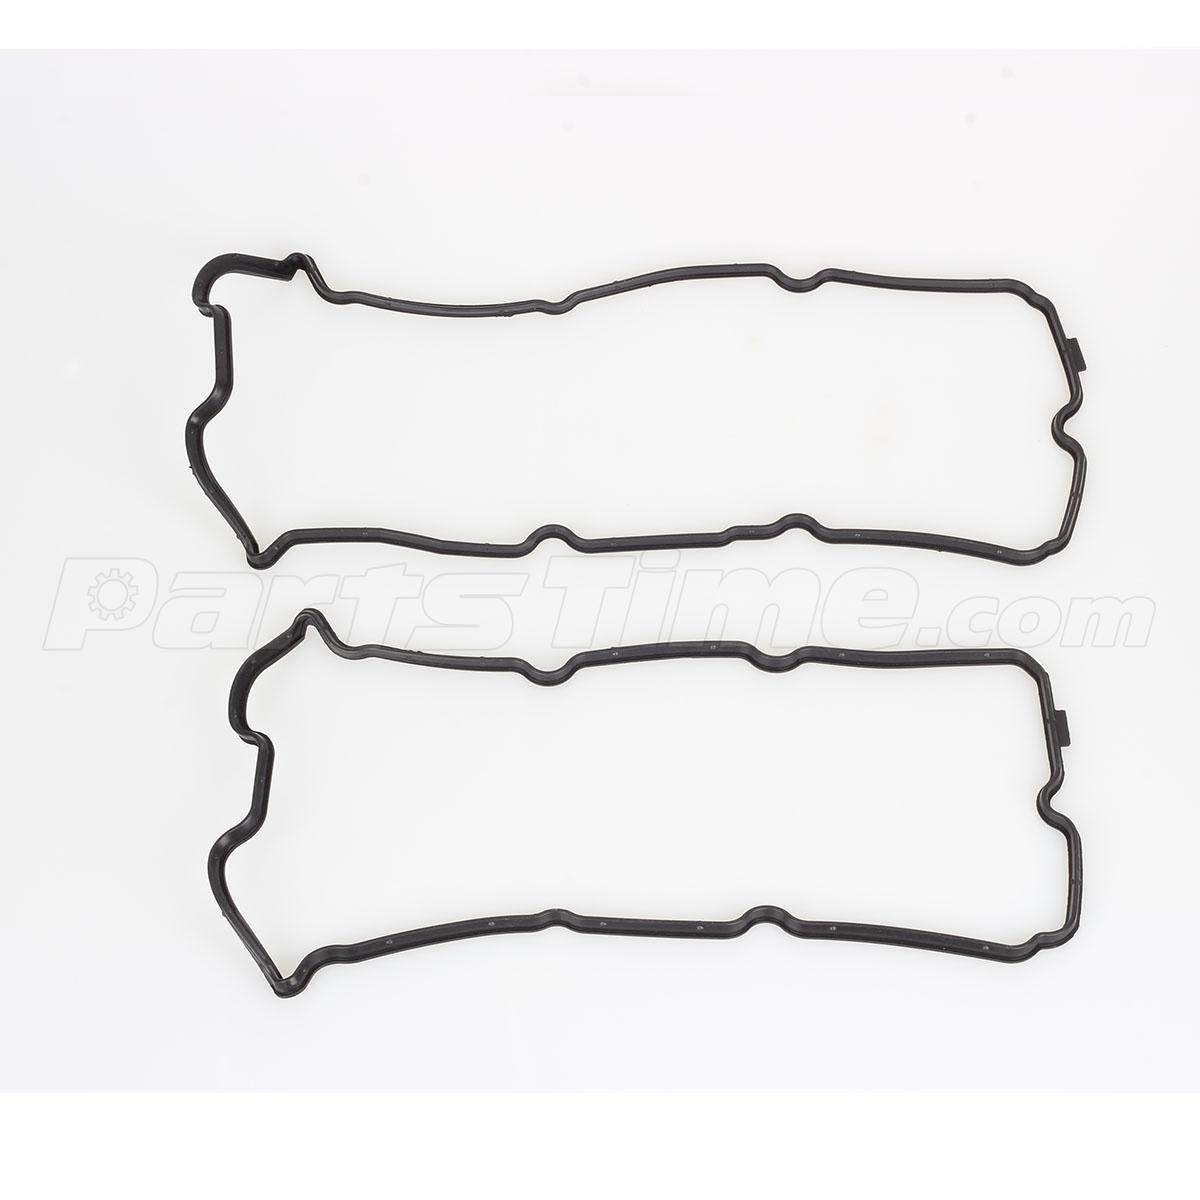 Cylinder Valve Cover Gaskets For 02-08 INFINITI FX35 G35